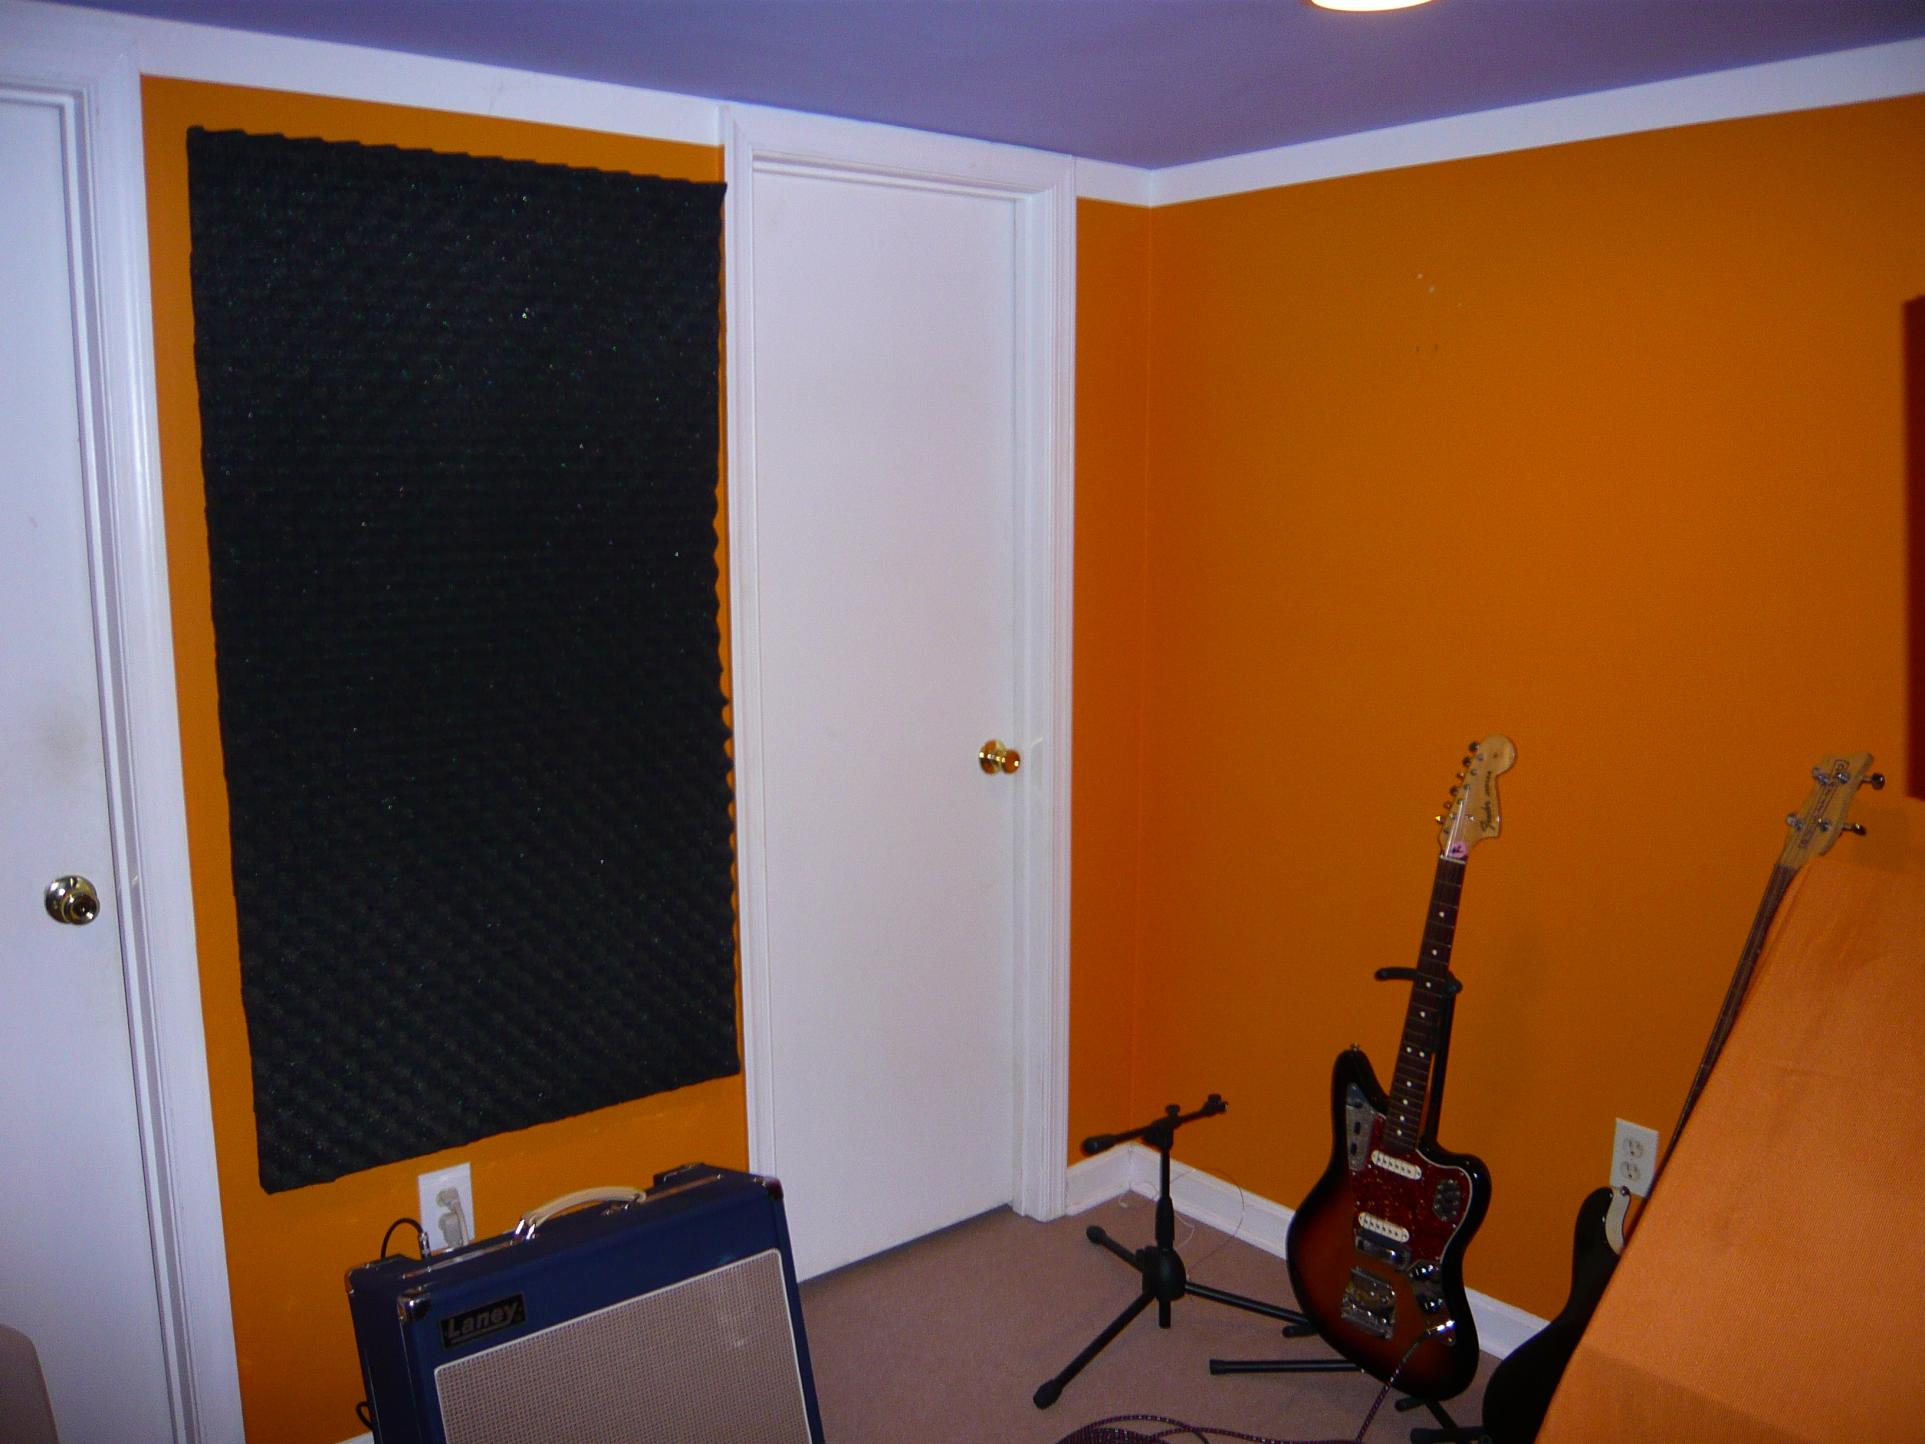 Diy Soundproof Room Divider Door Soundproofing Panels And Soundproofing Wall Panels